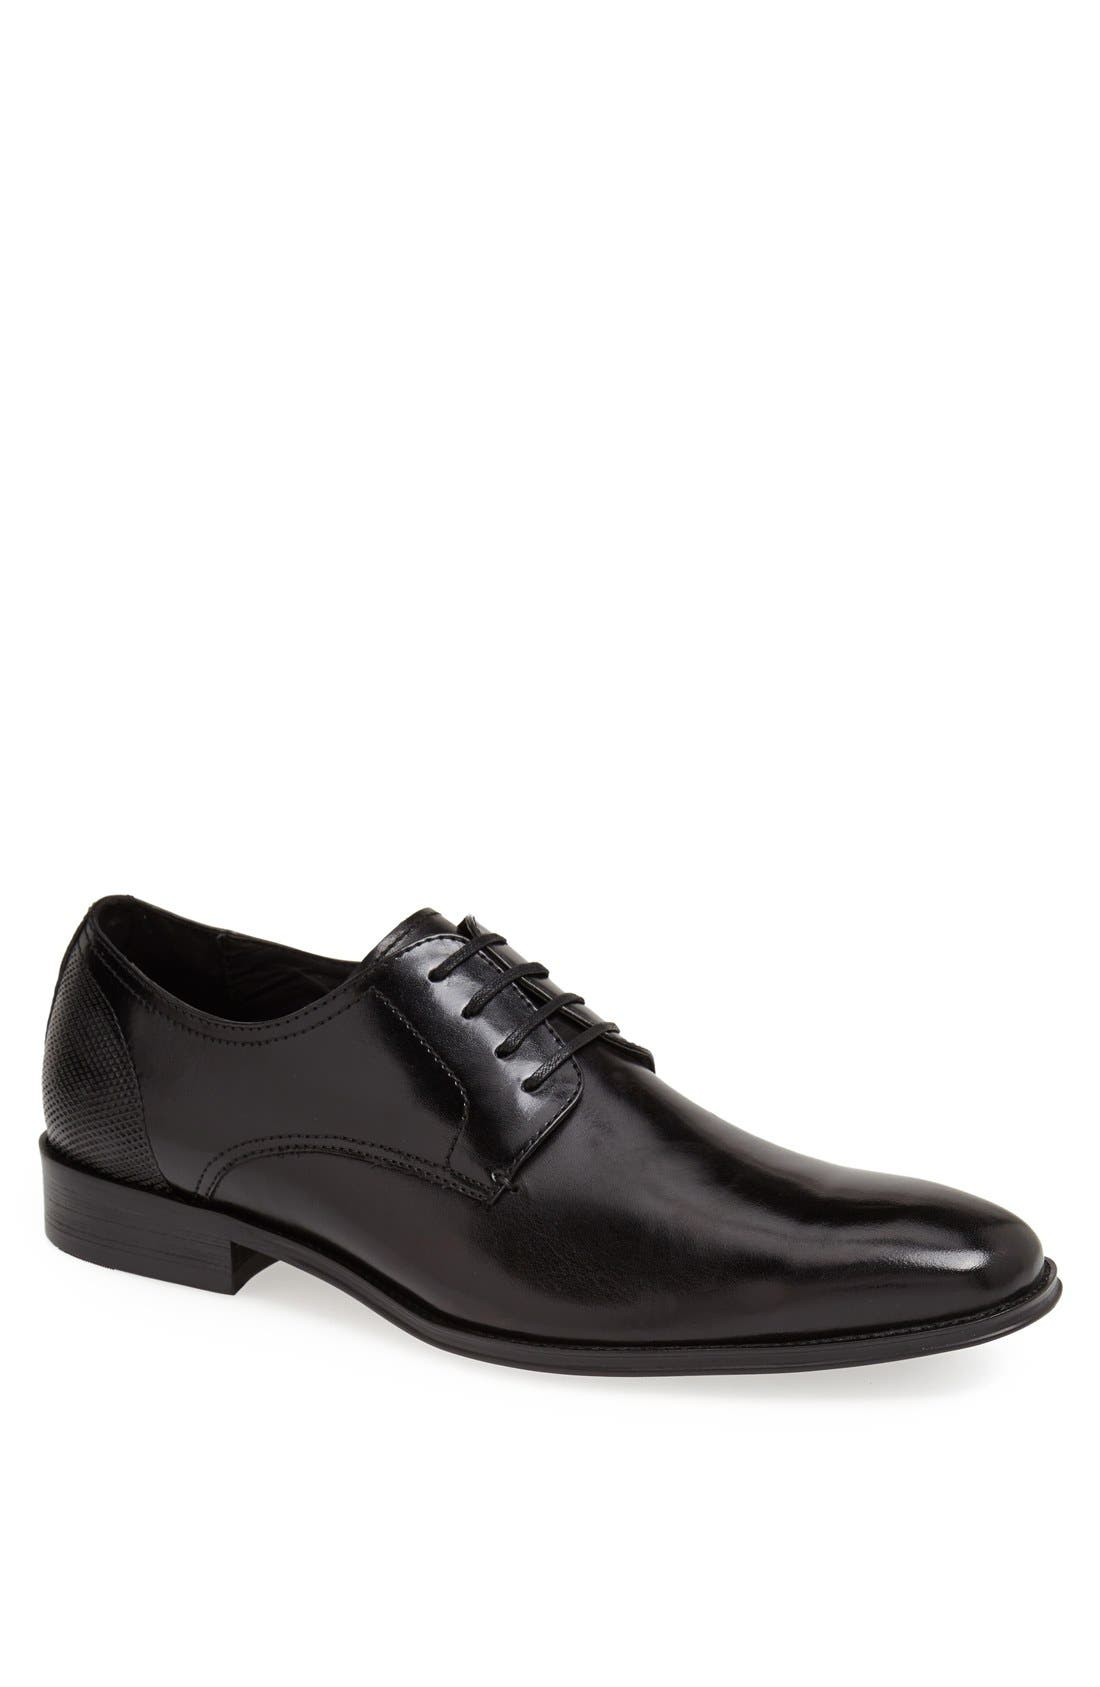 Main Image - Kenneth Cole Reaction 'One Love' Plain Toe Derby